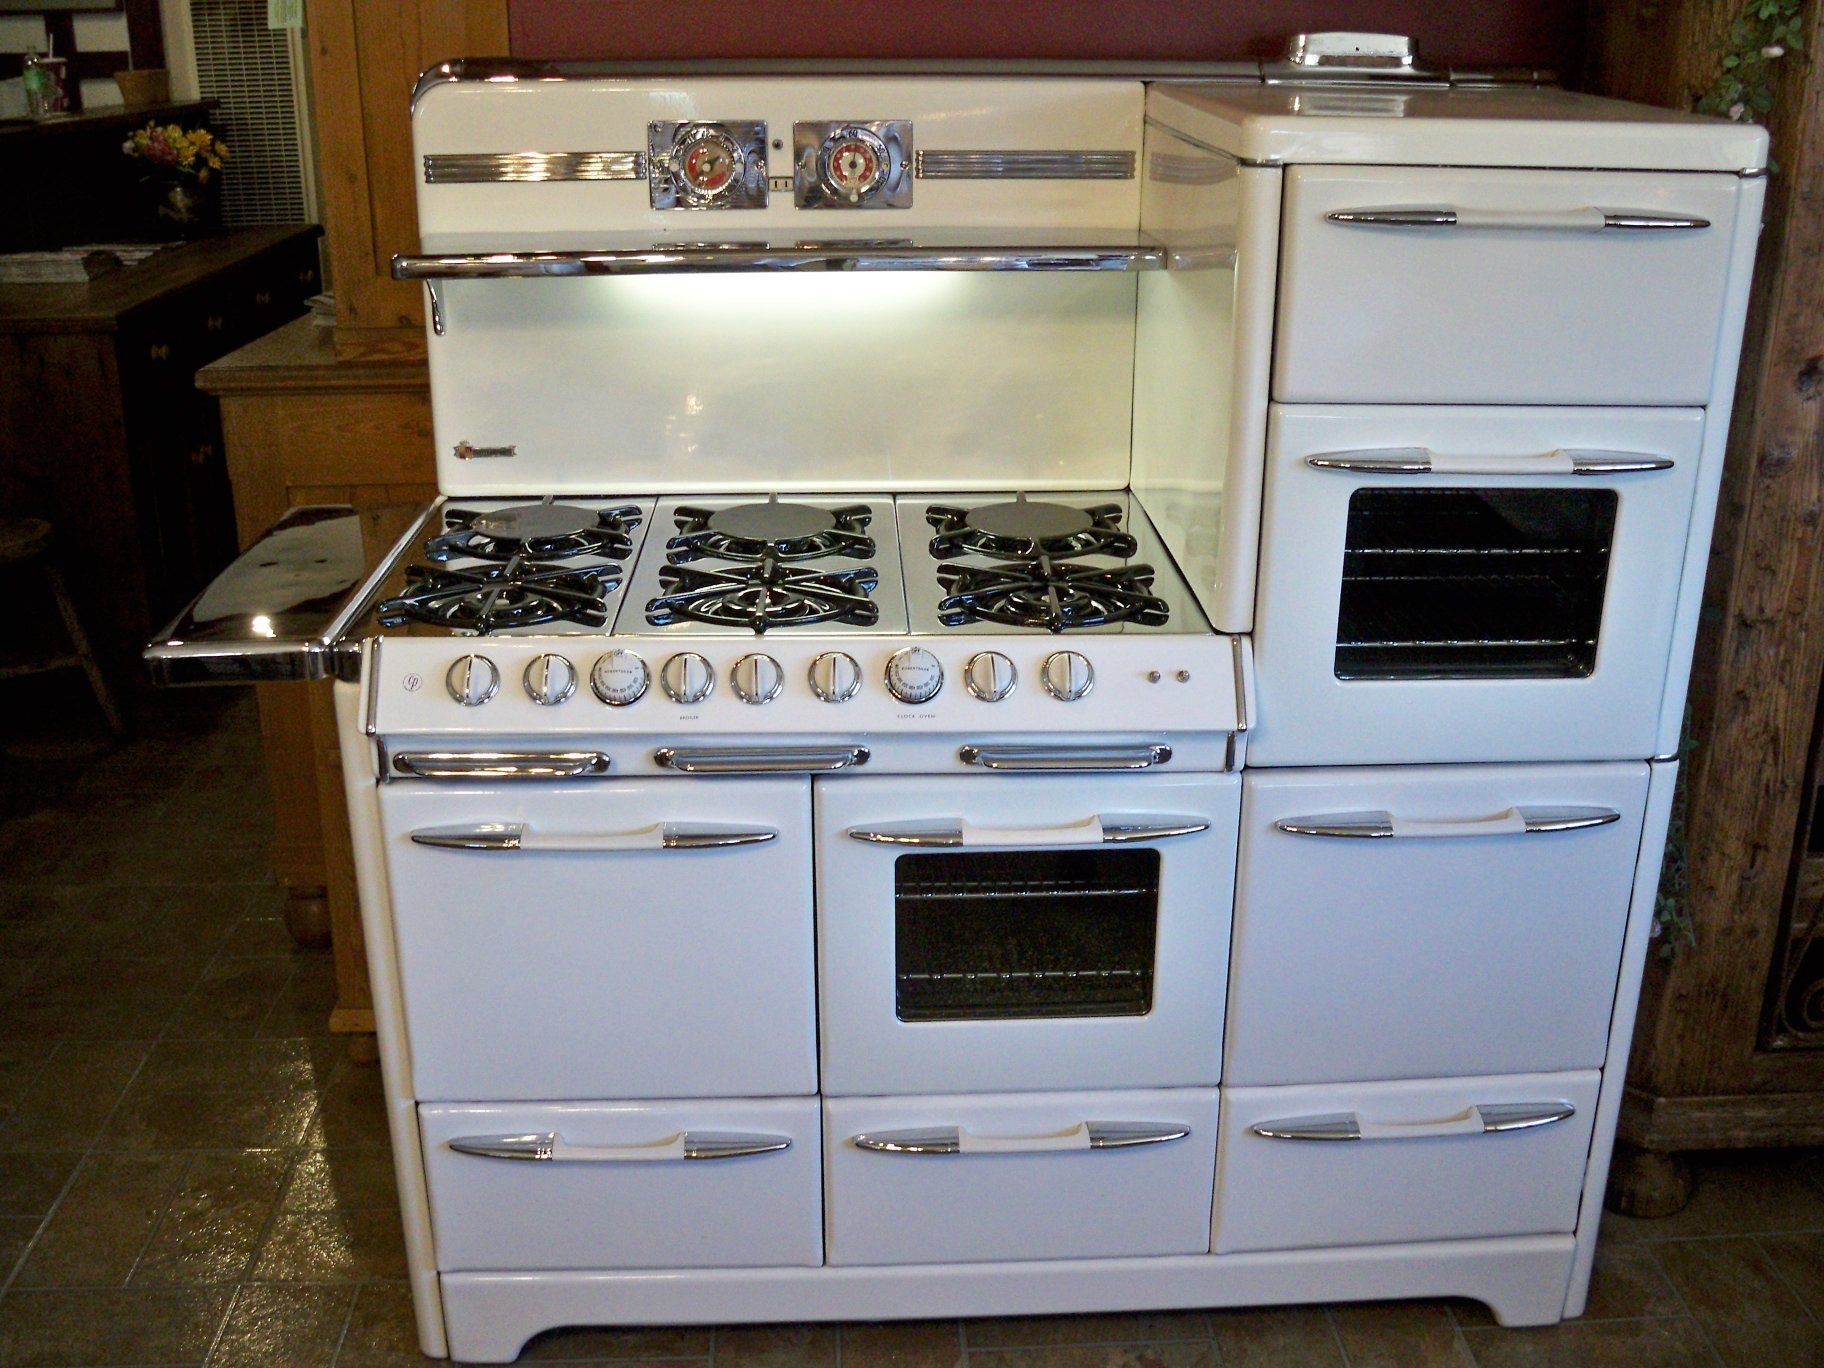 Uncategorized 1940s Kitchen Appliances okeefe merritt town and country from the 1940s 1950s huge